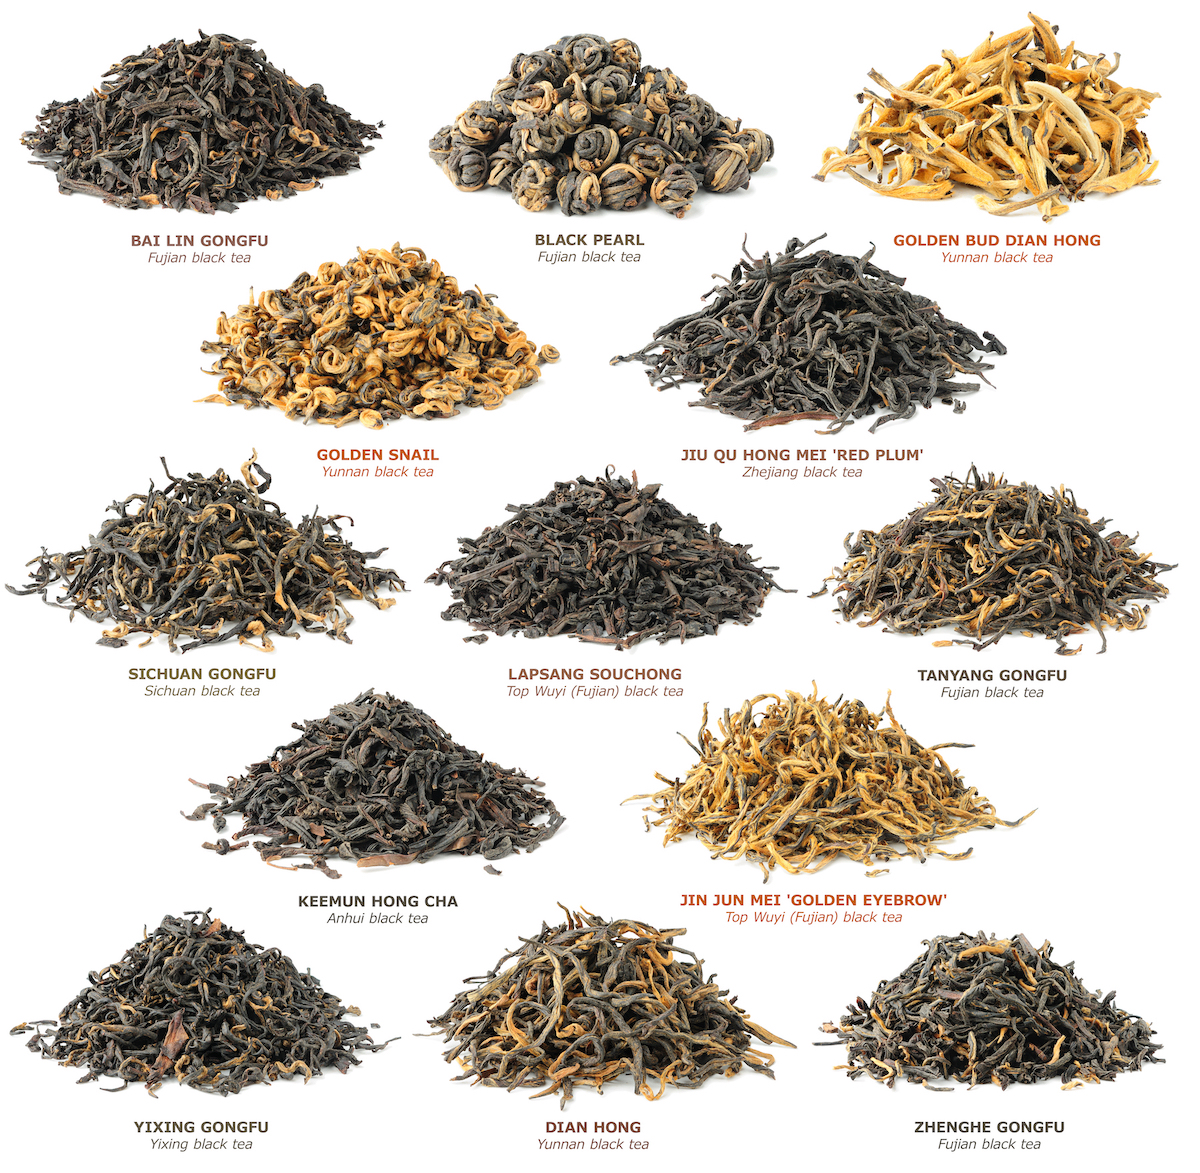 Piles of different types of black tea leaves